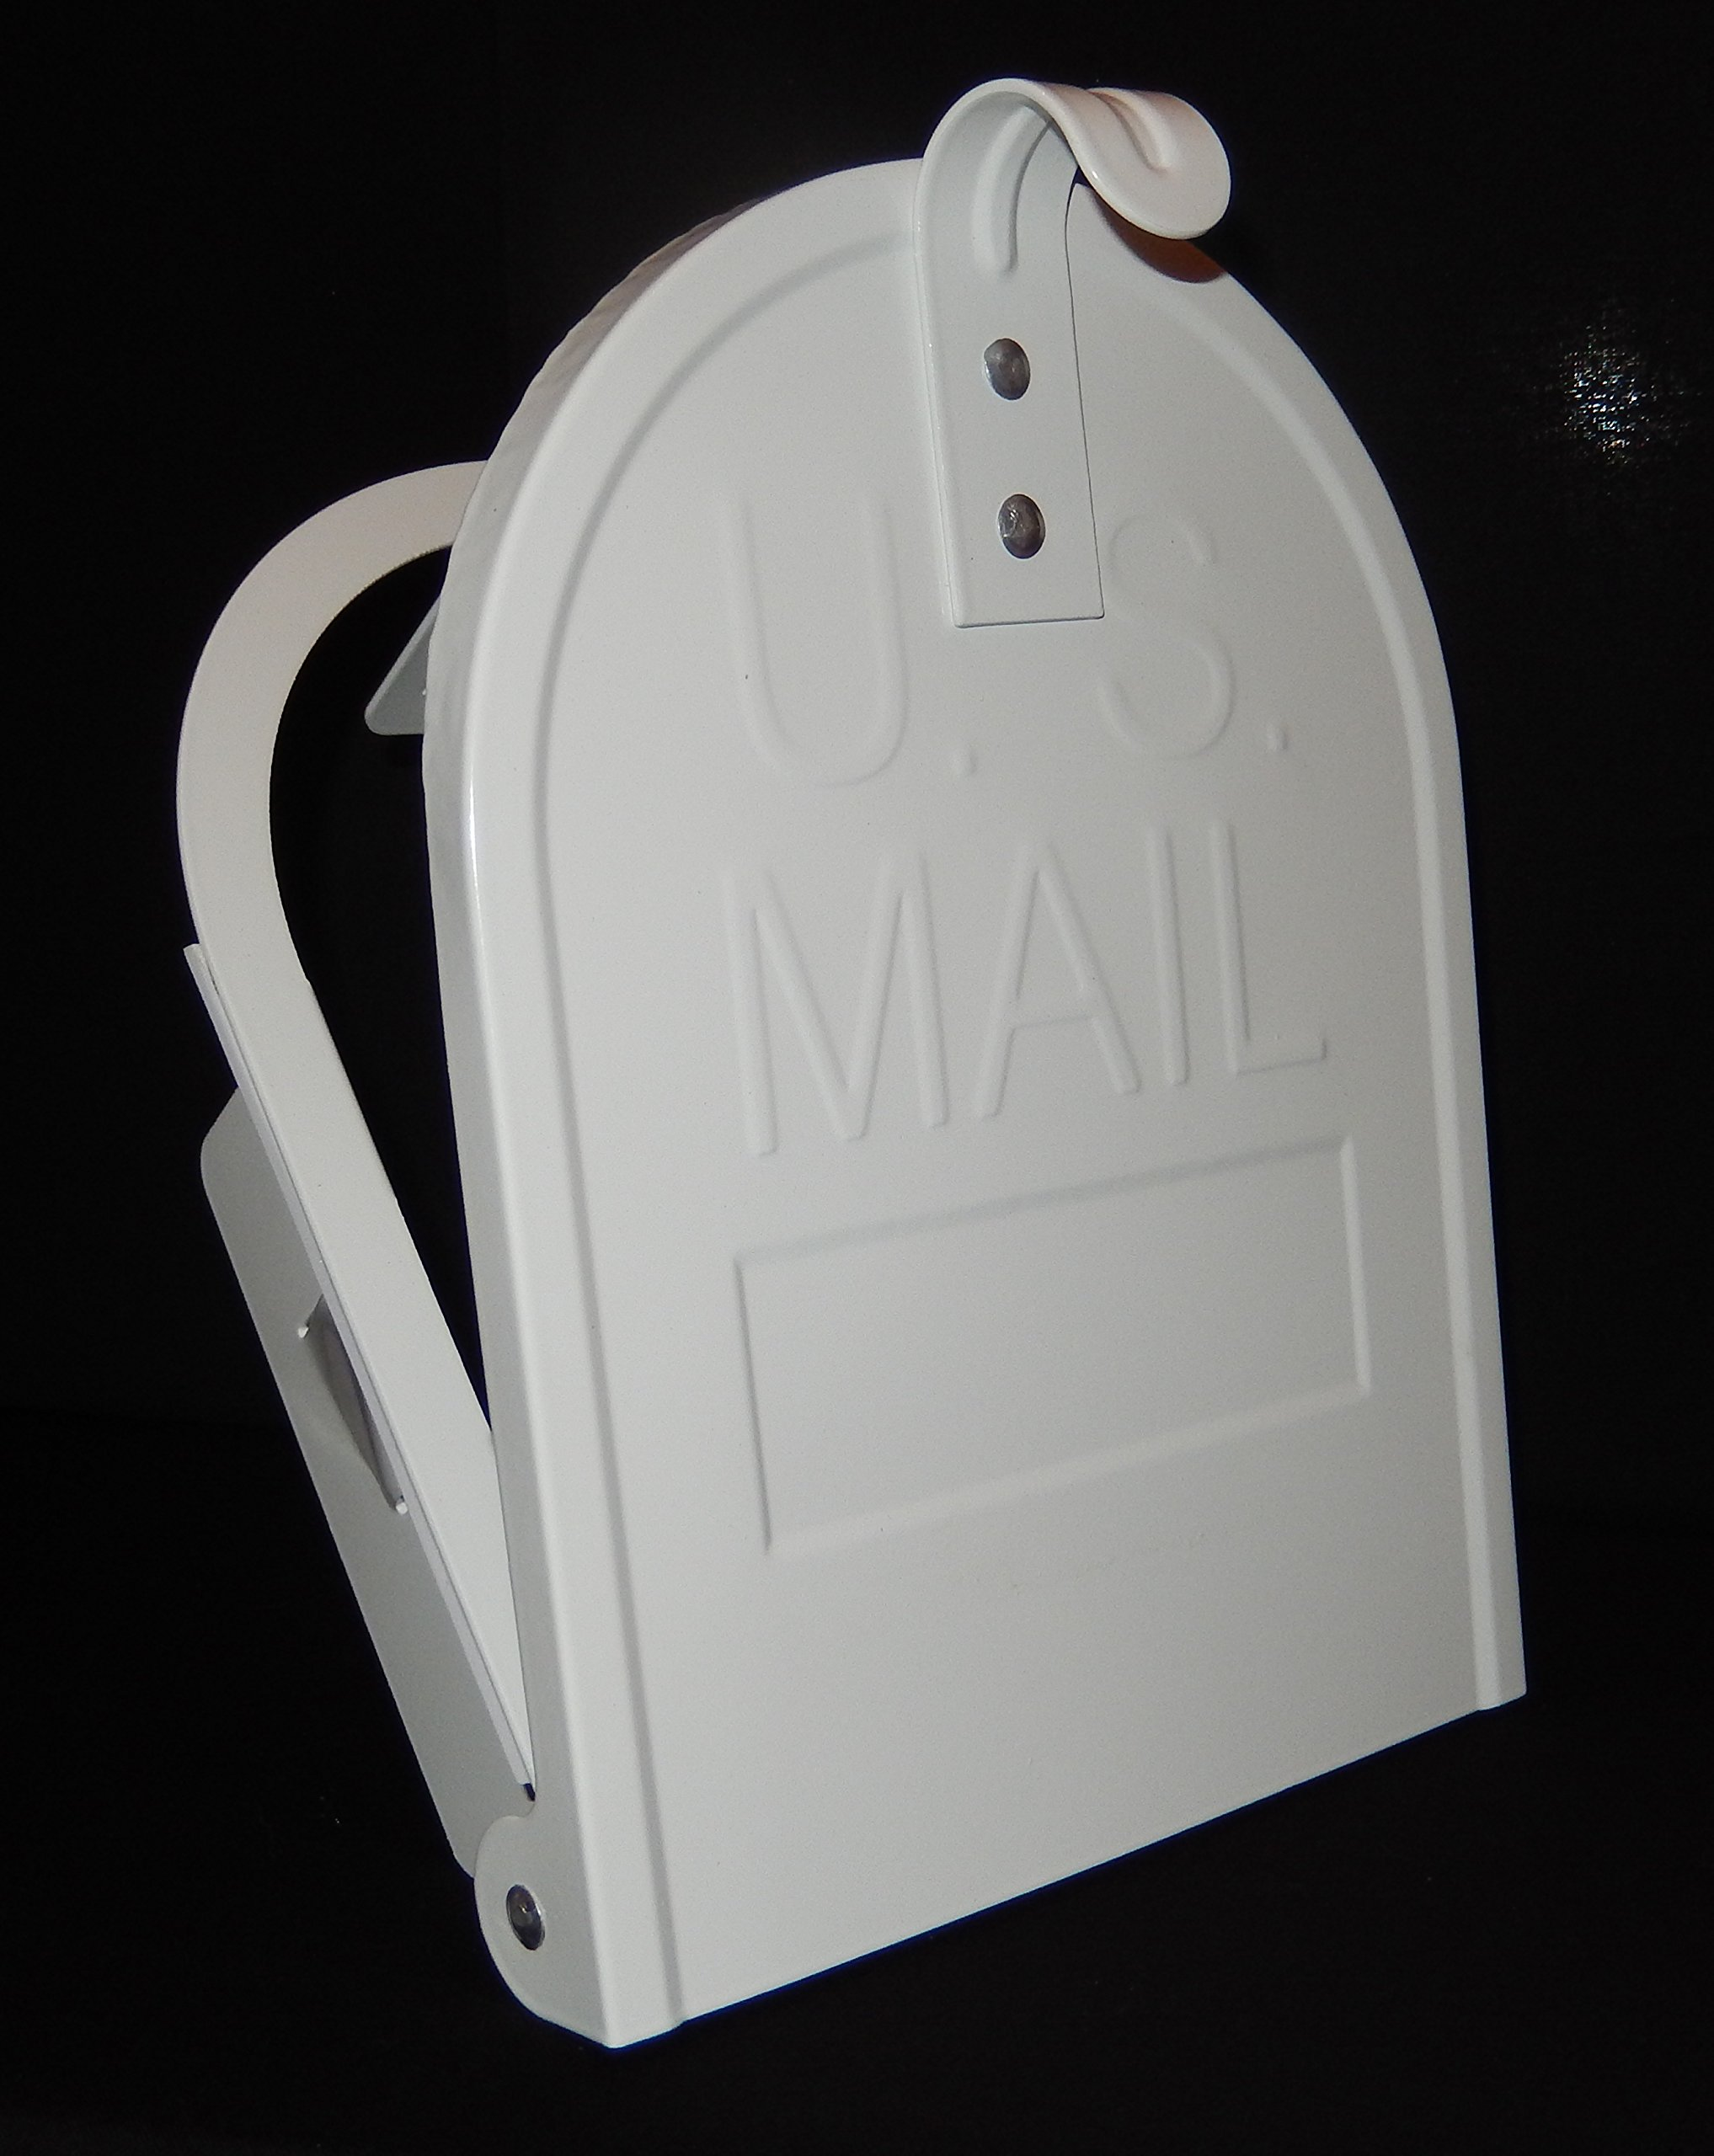 6 1/4 Inch (Width) by 8 Inch (Height) RetroFit ''Snap-In'' Mailbox Door Replacement - White